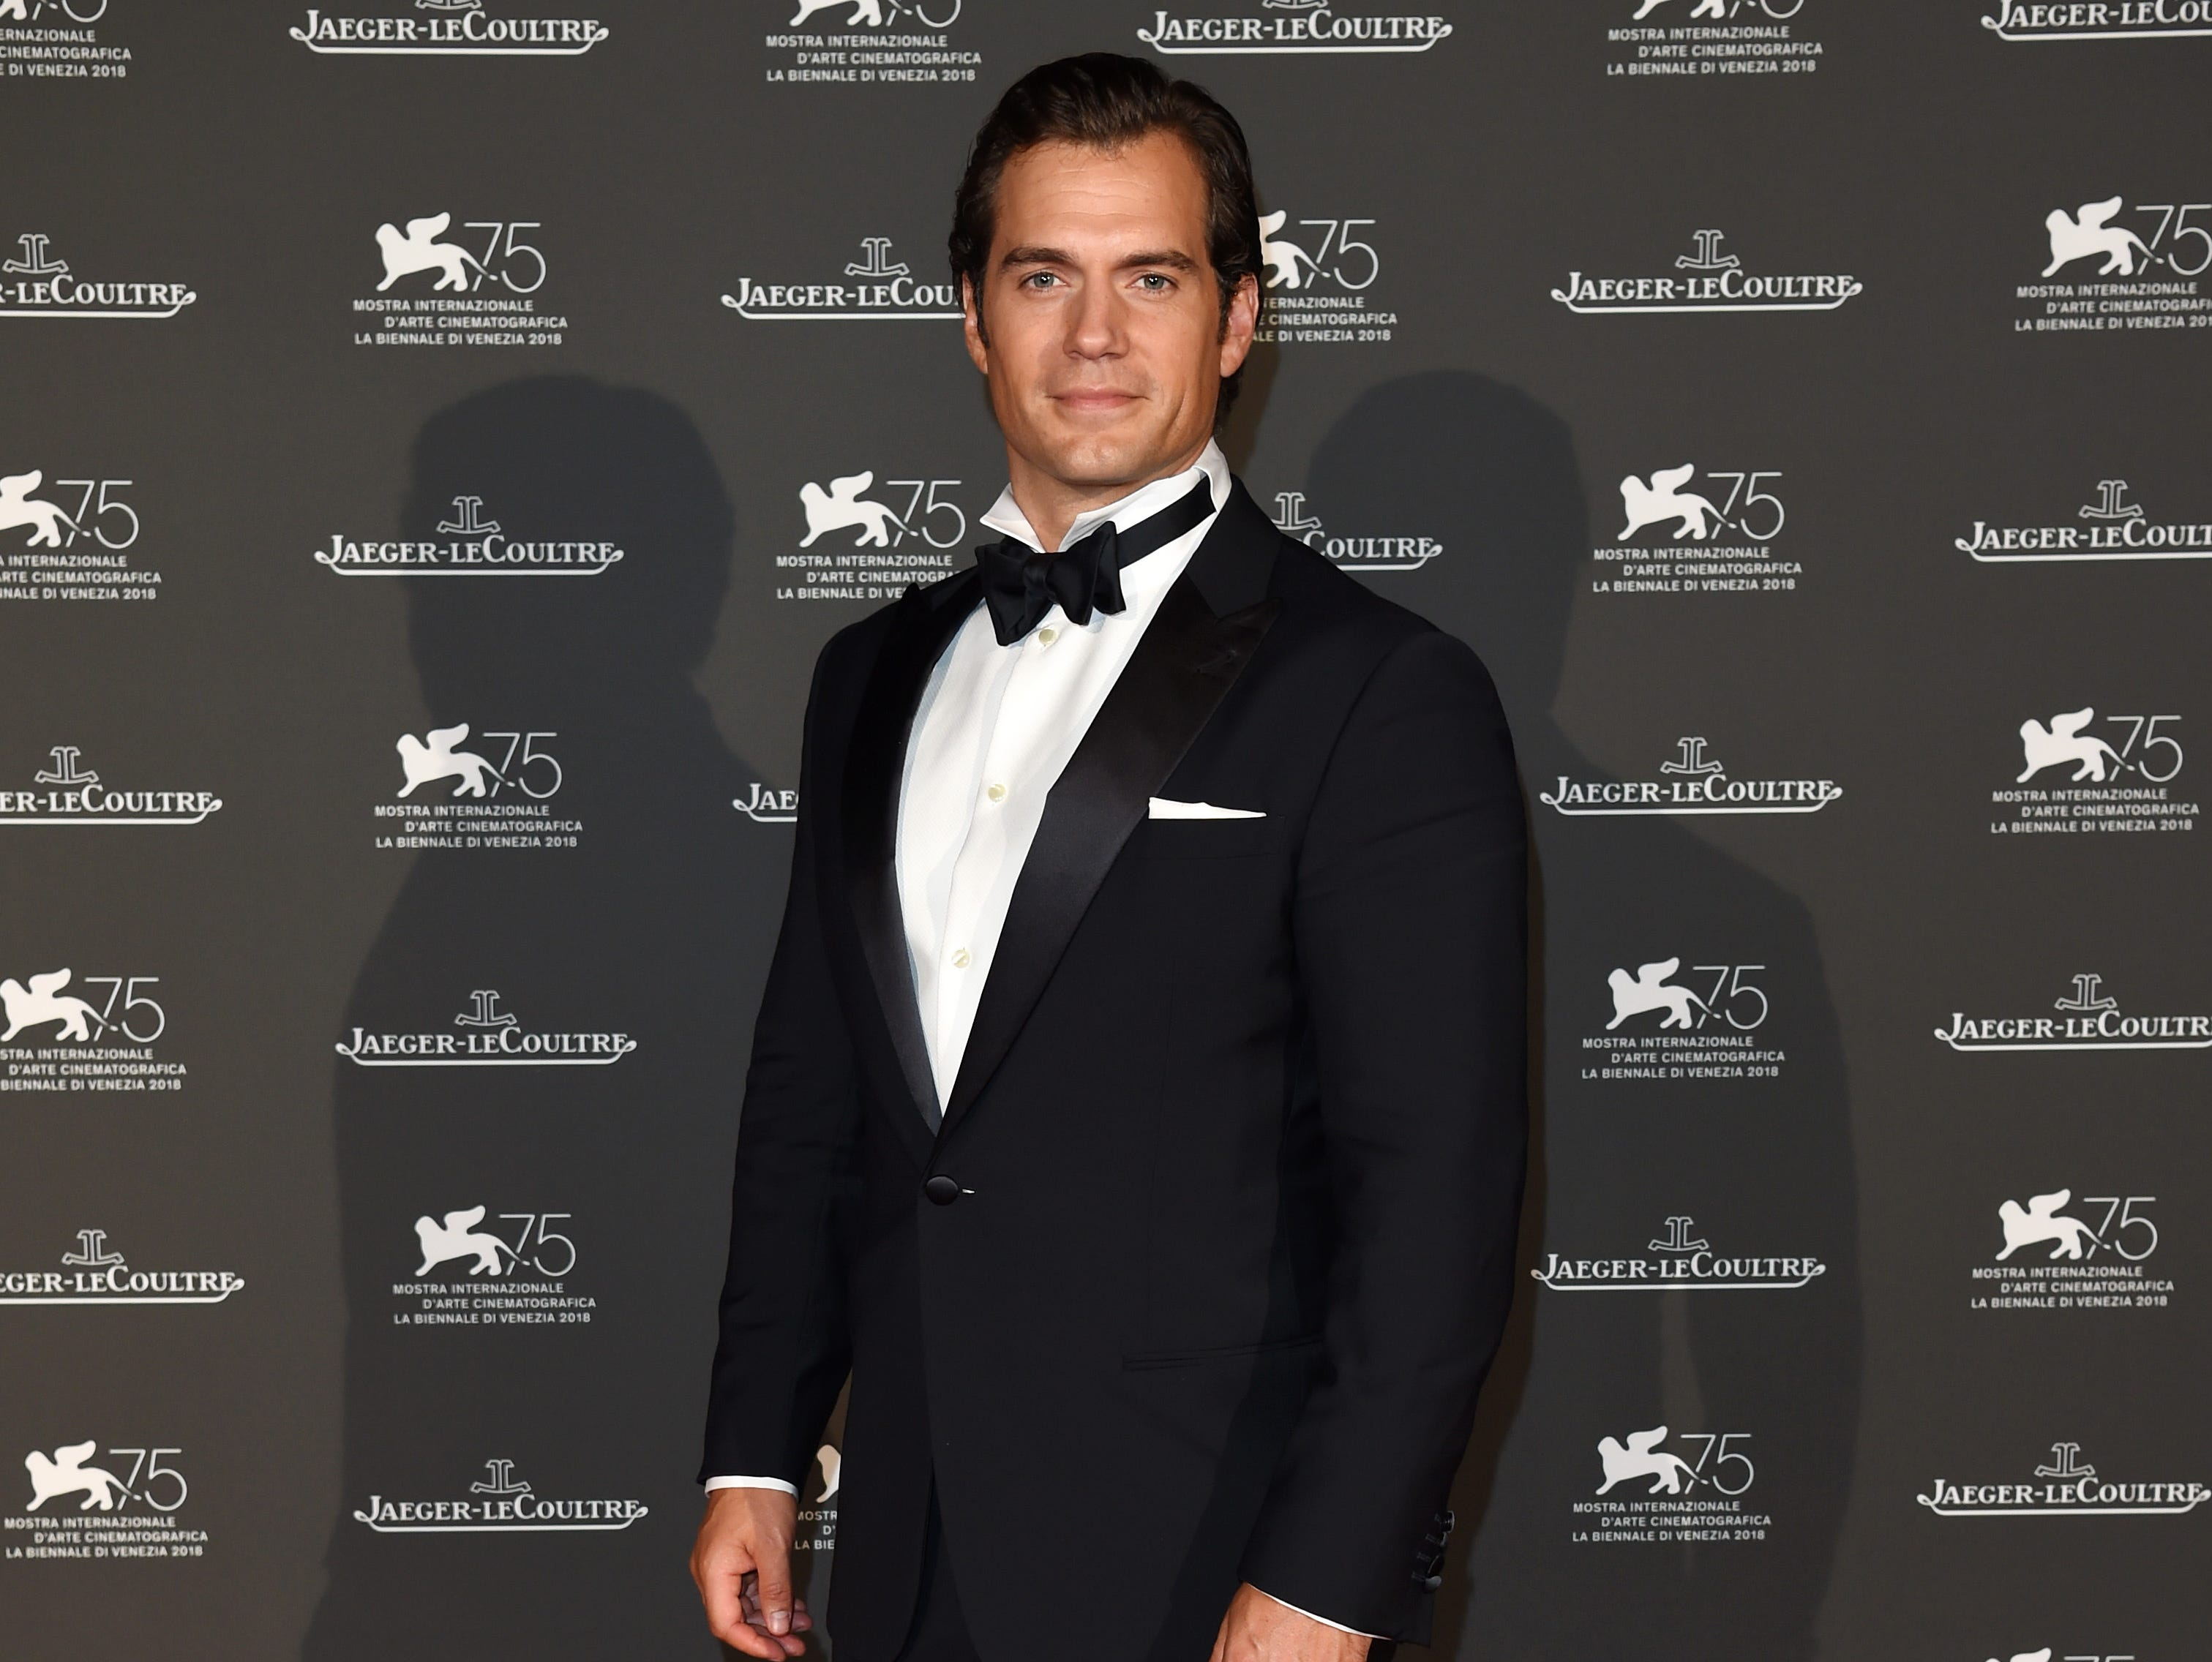 Henry Cavill arrives for the Jaeger-LeCoultre Gala Dinner on Tuesday.